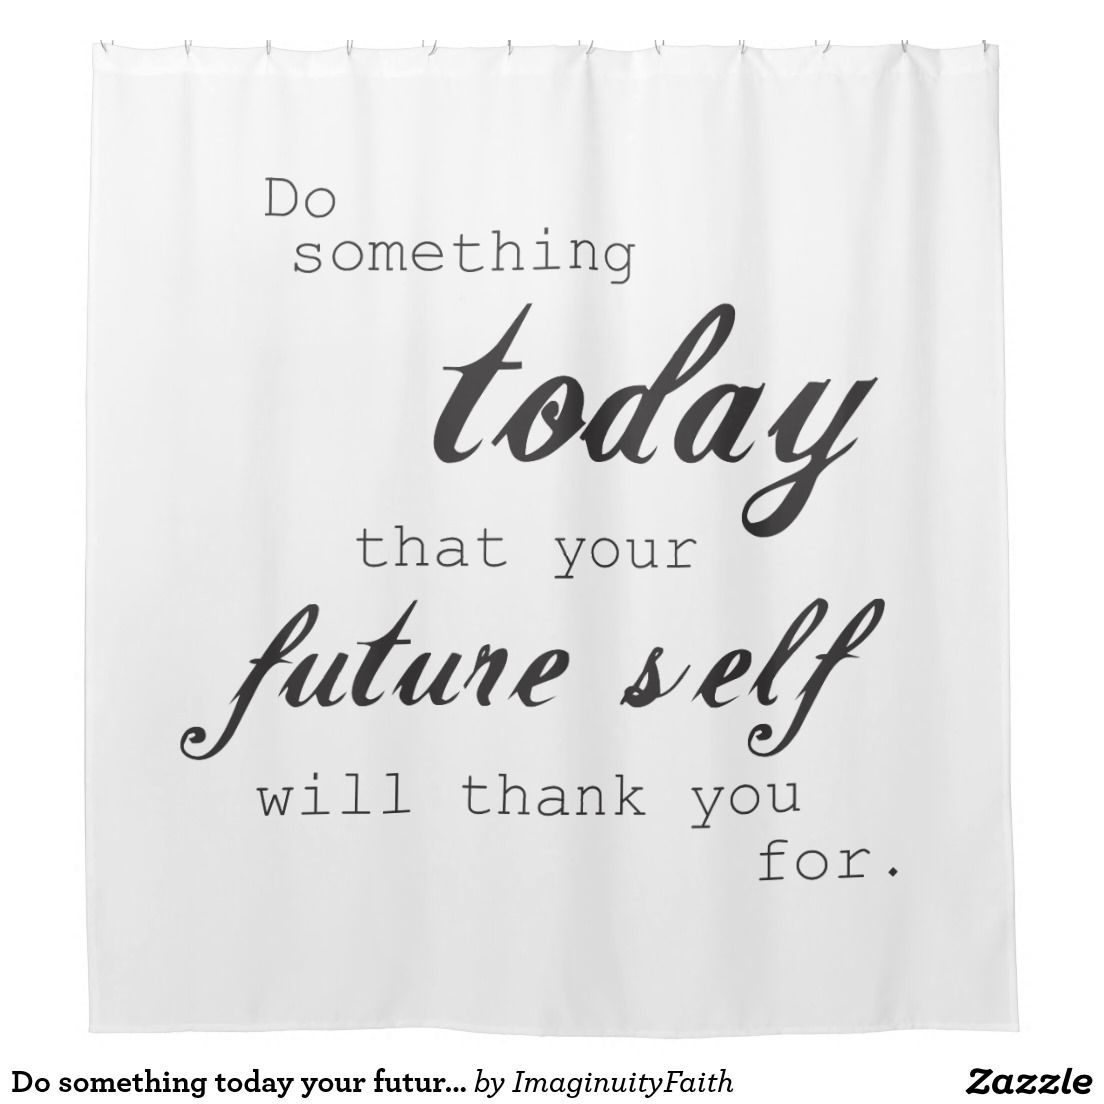 Do Something Today Your Future Self Will Thank You Shower Curtain